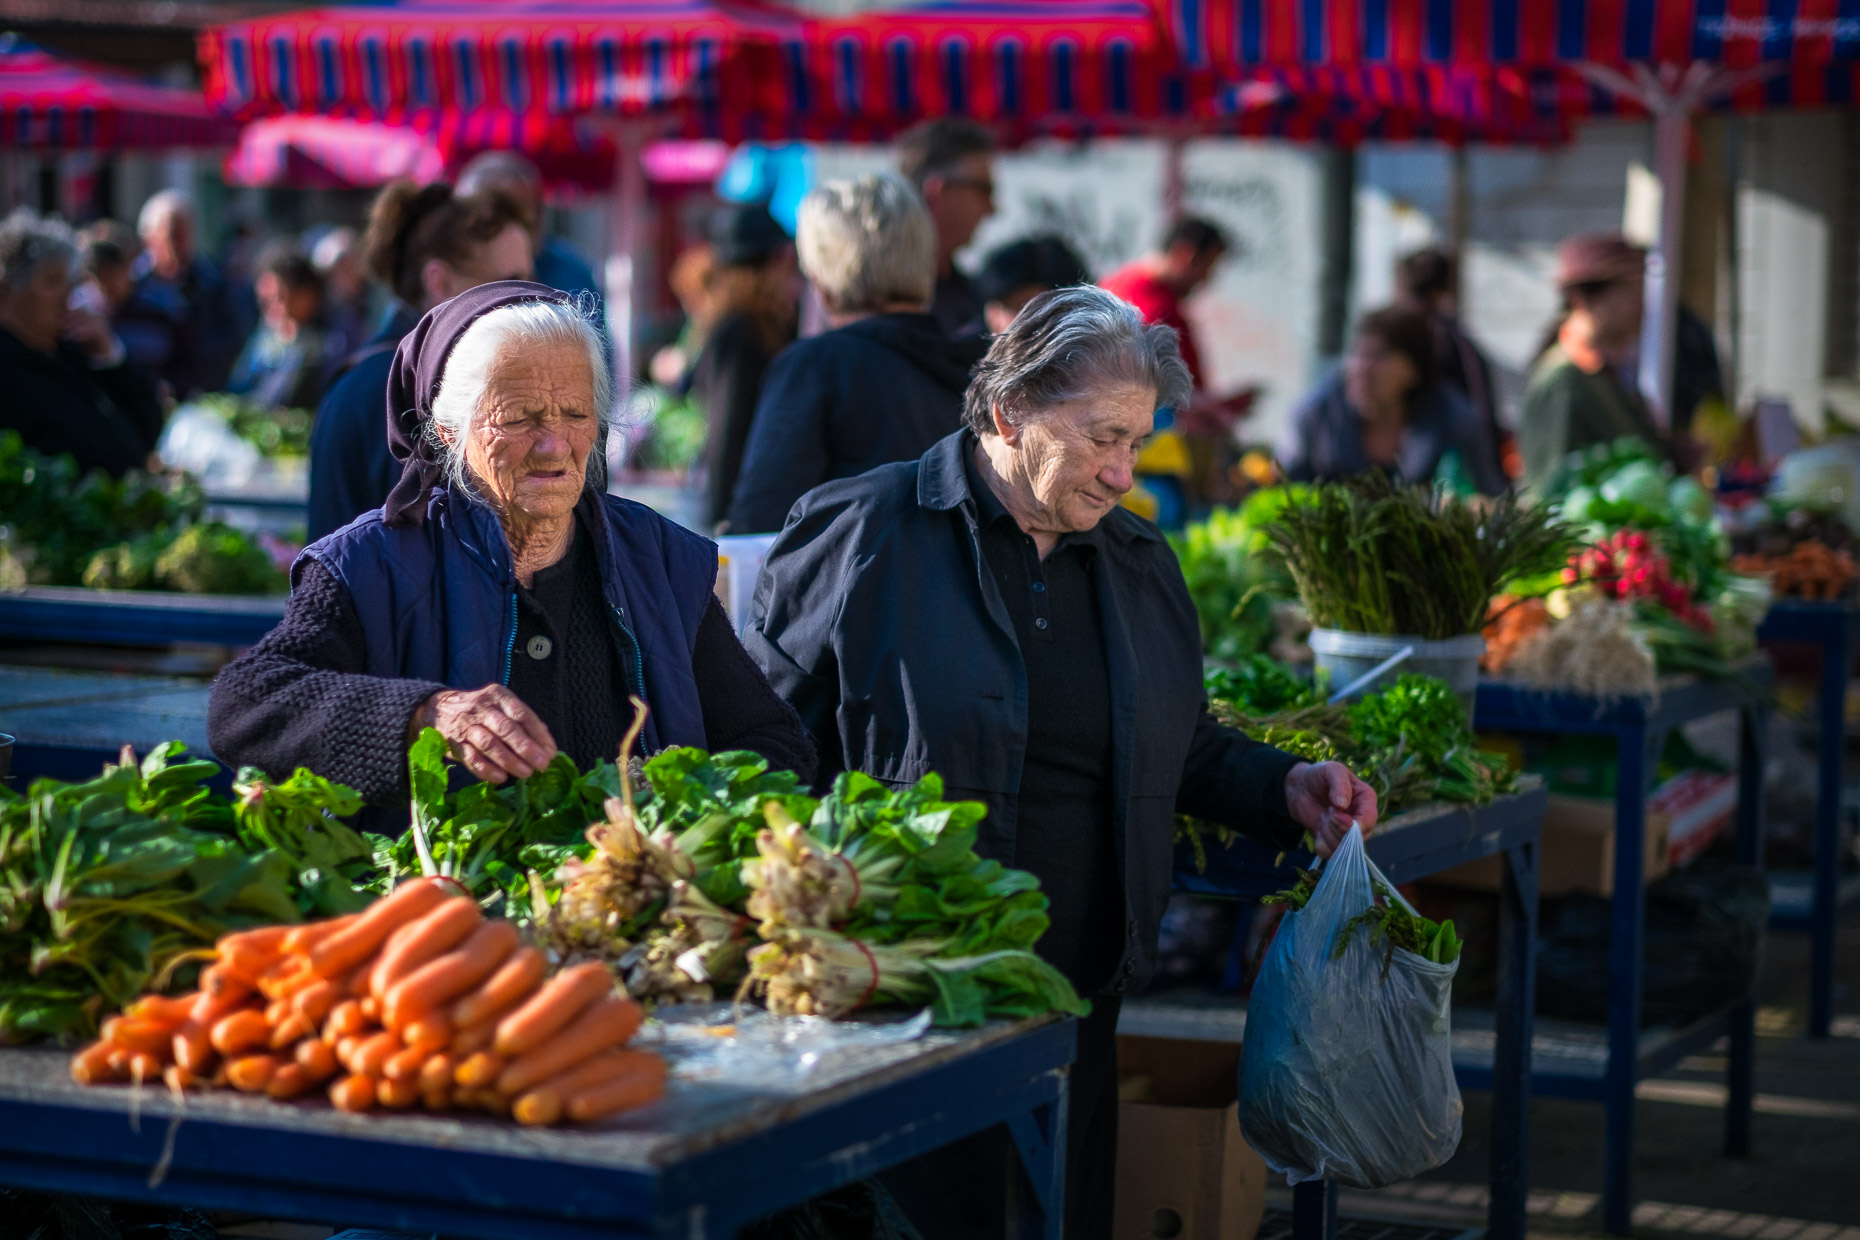 Market life in Split, Croatia